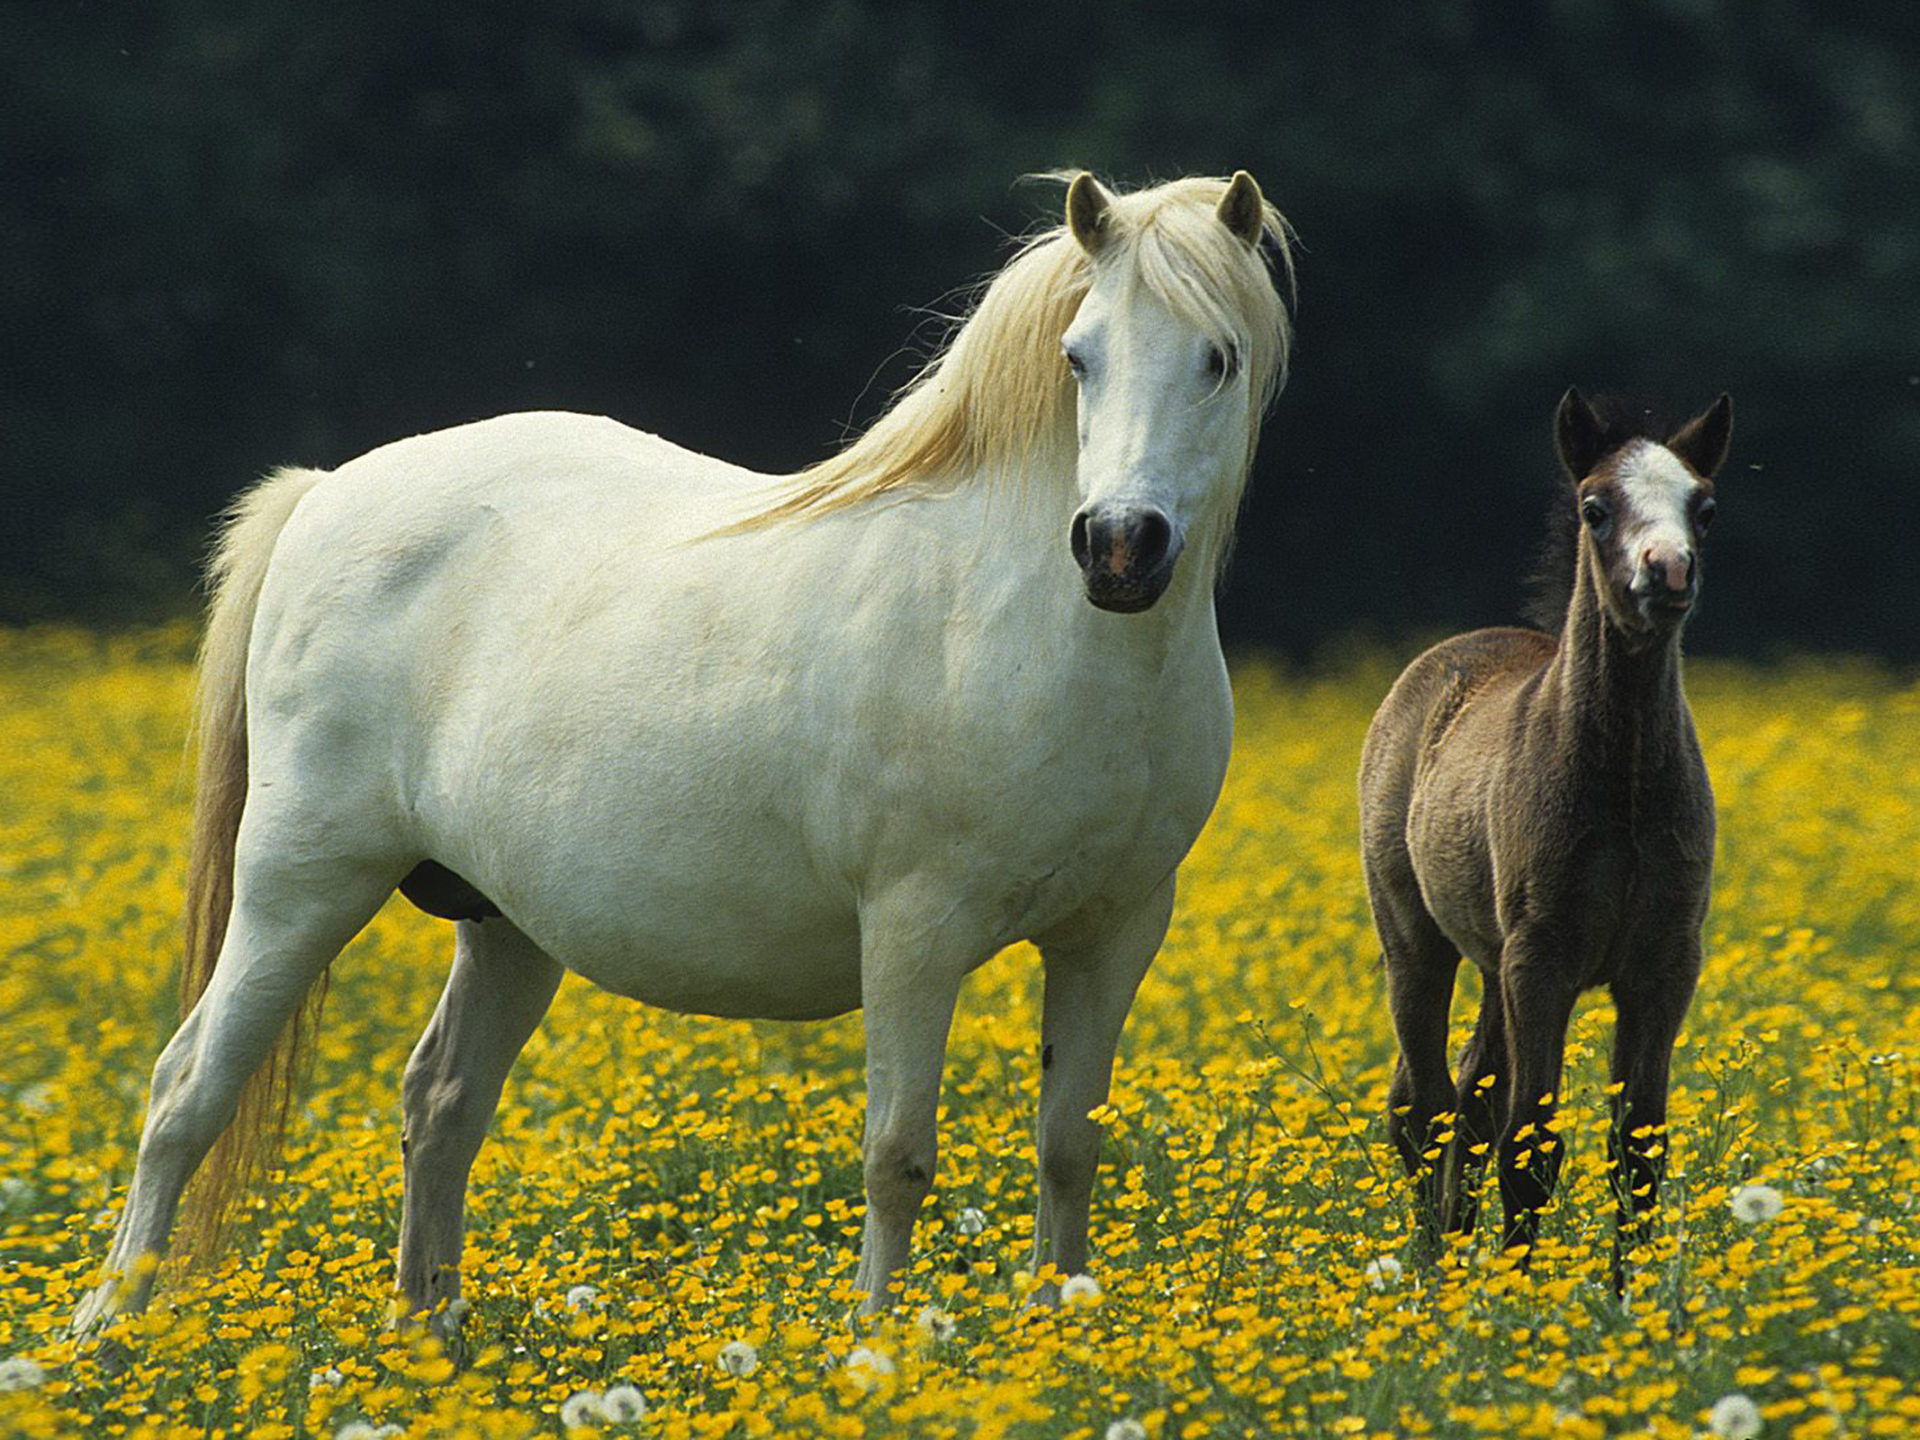 Cute Lock Screen Wallpapers Hd White Horse Small Black Colt Meadow With Yellow Flowers